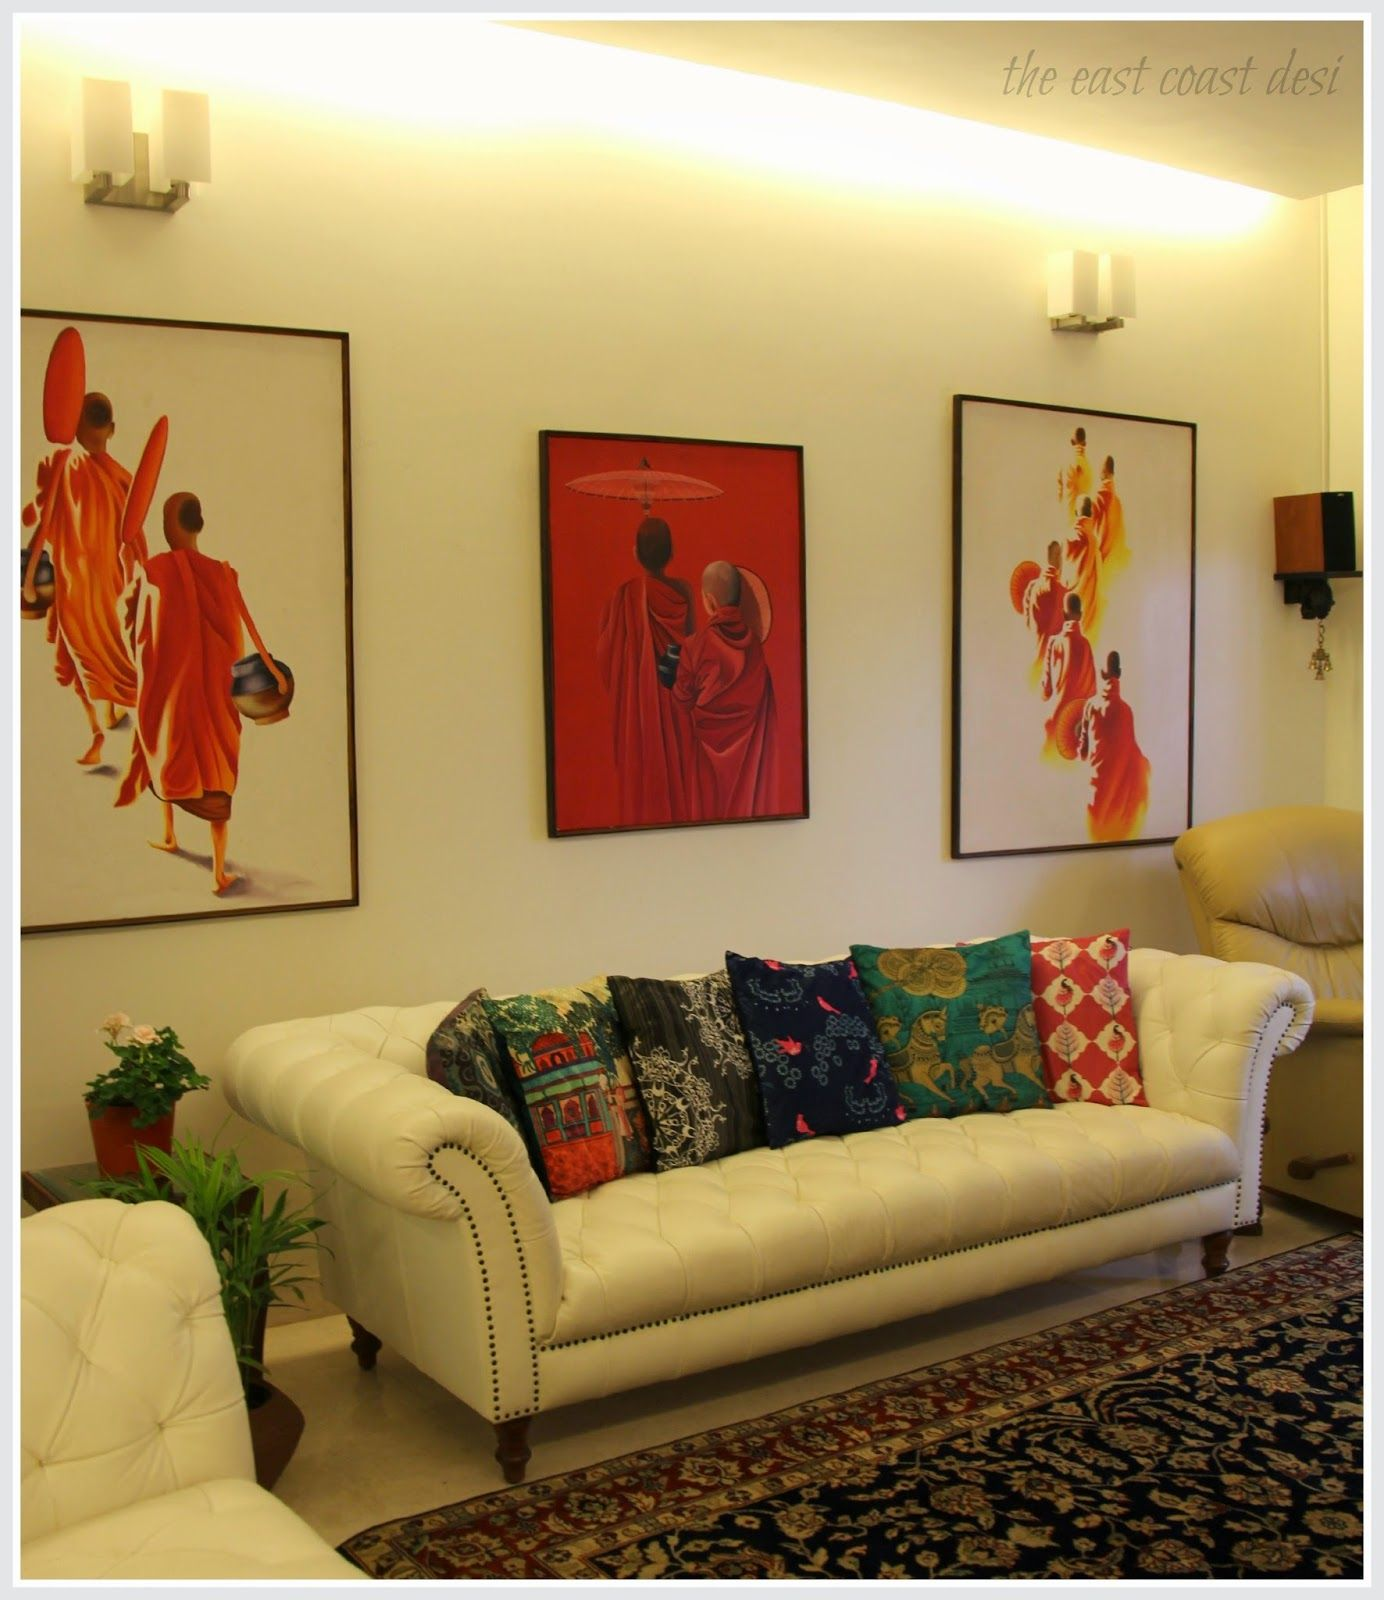 Masterful Mixing (Home tour) | Indian artist, Contemporary furniture ...